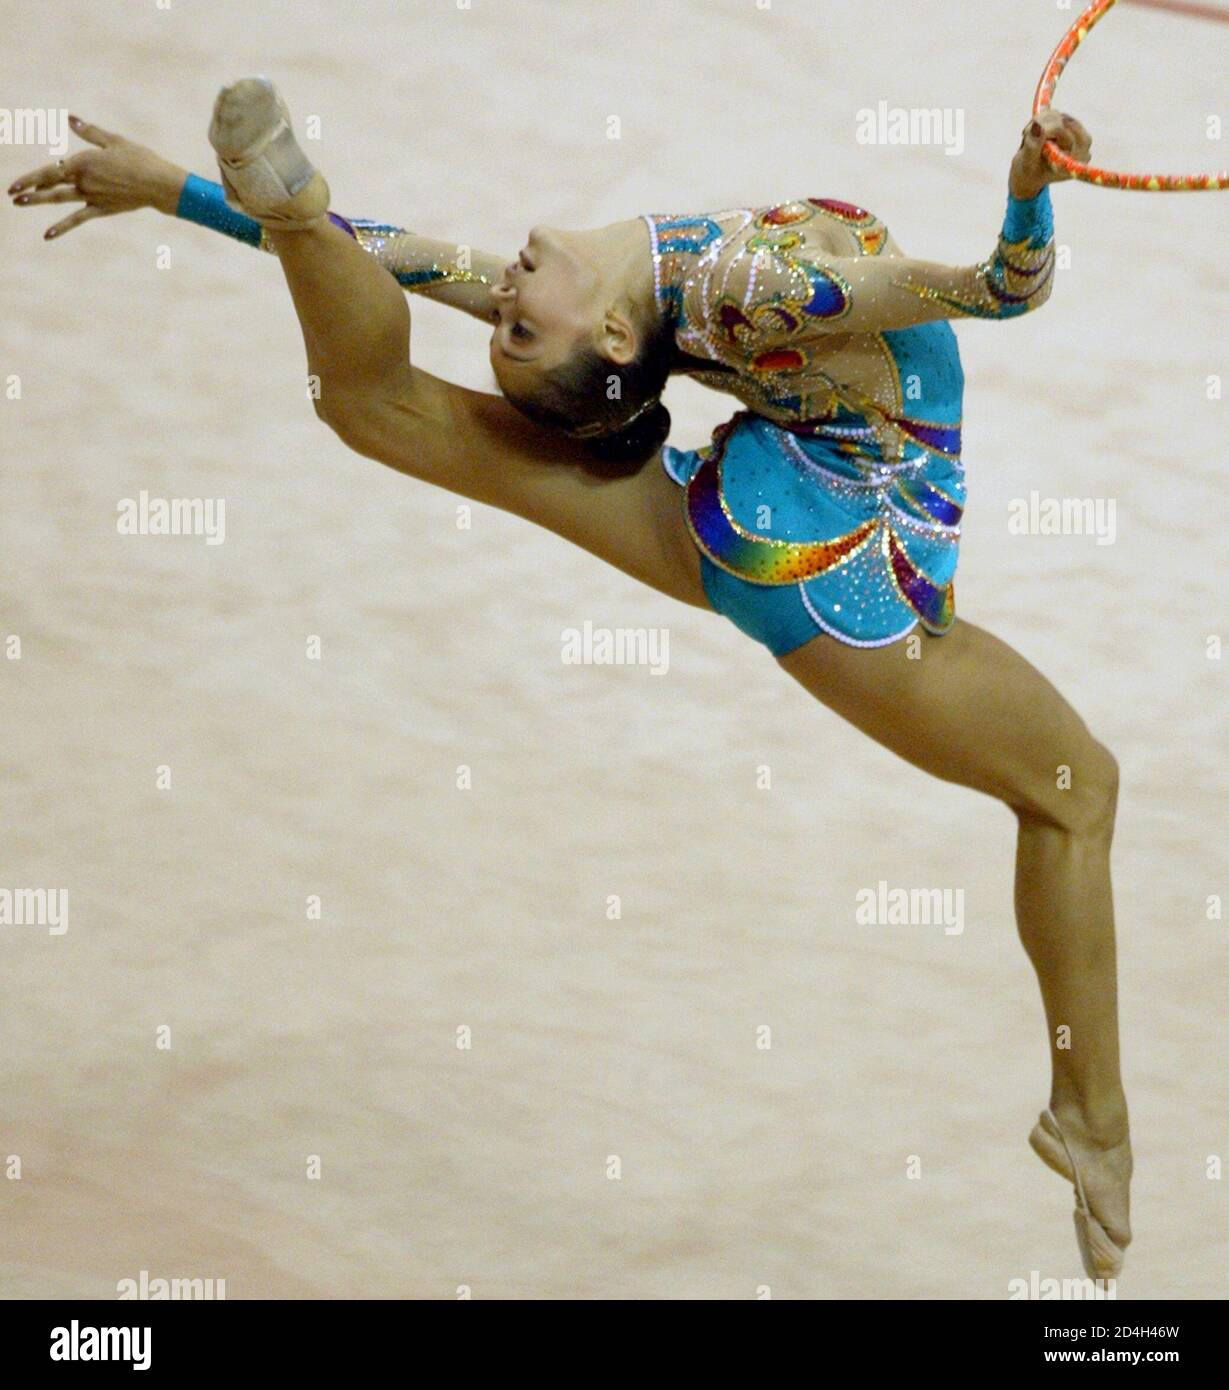 IRINA FROM RUSSIA PERFORMS DURING THE RYTHMIC GYMNASTICS OF THE 22ND SUMMER UNIVERSIADE GAMES IN KYEONGJU. Stock Photo